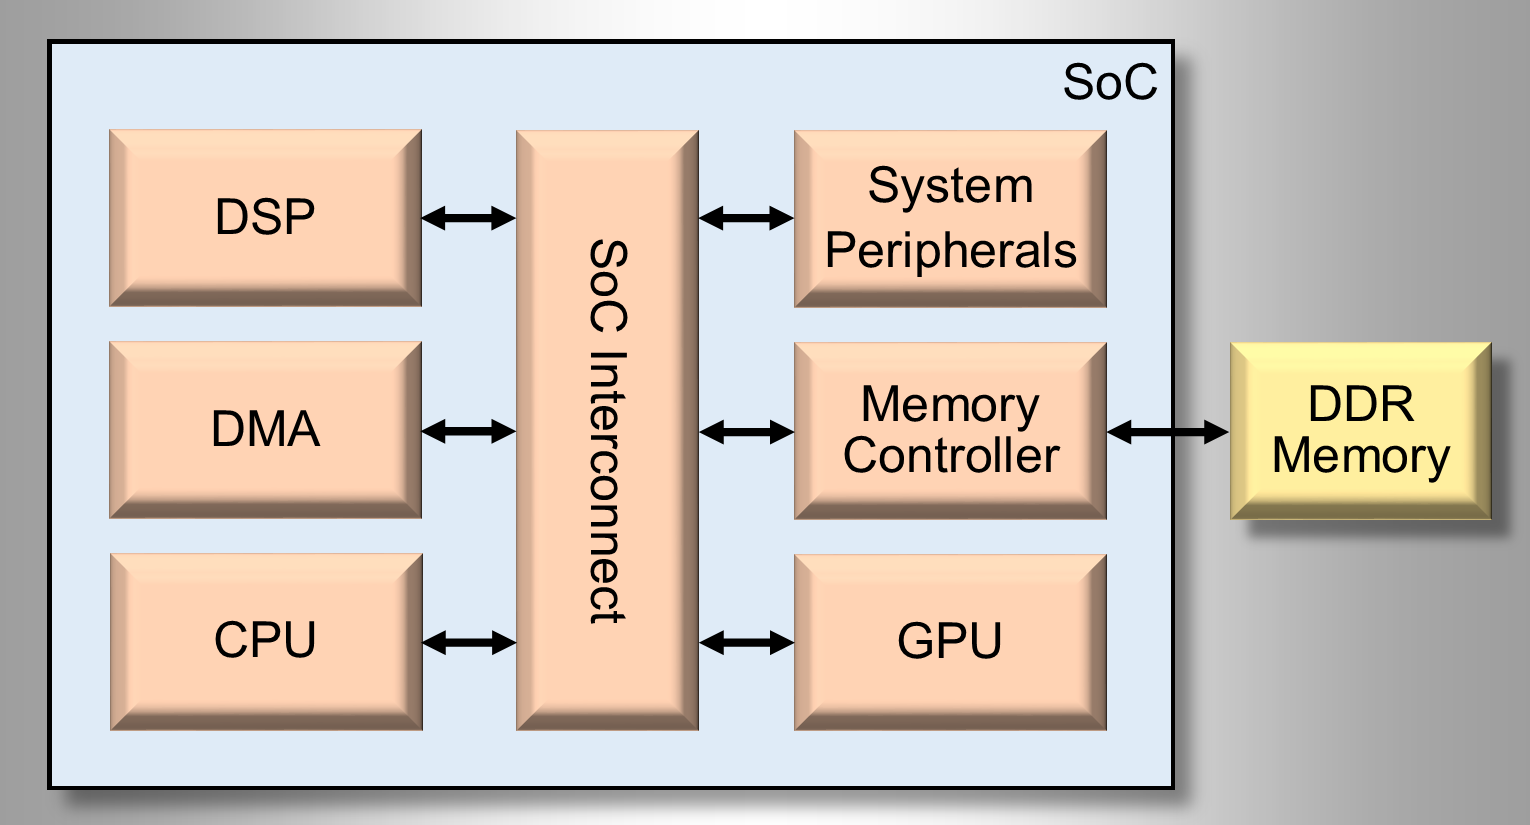 Typical SoC Architecture